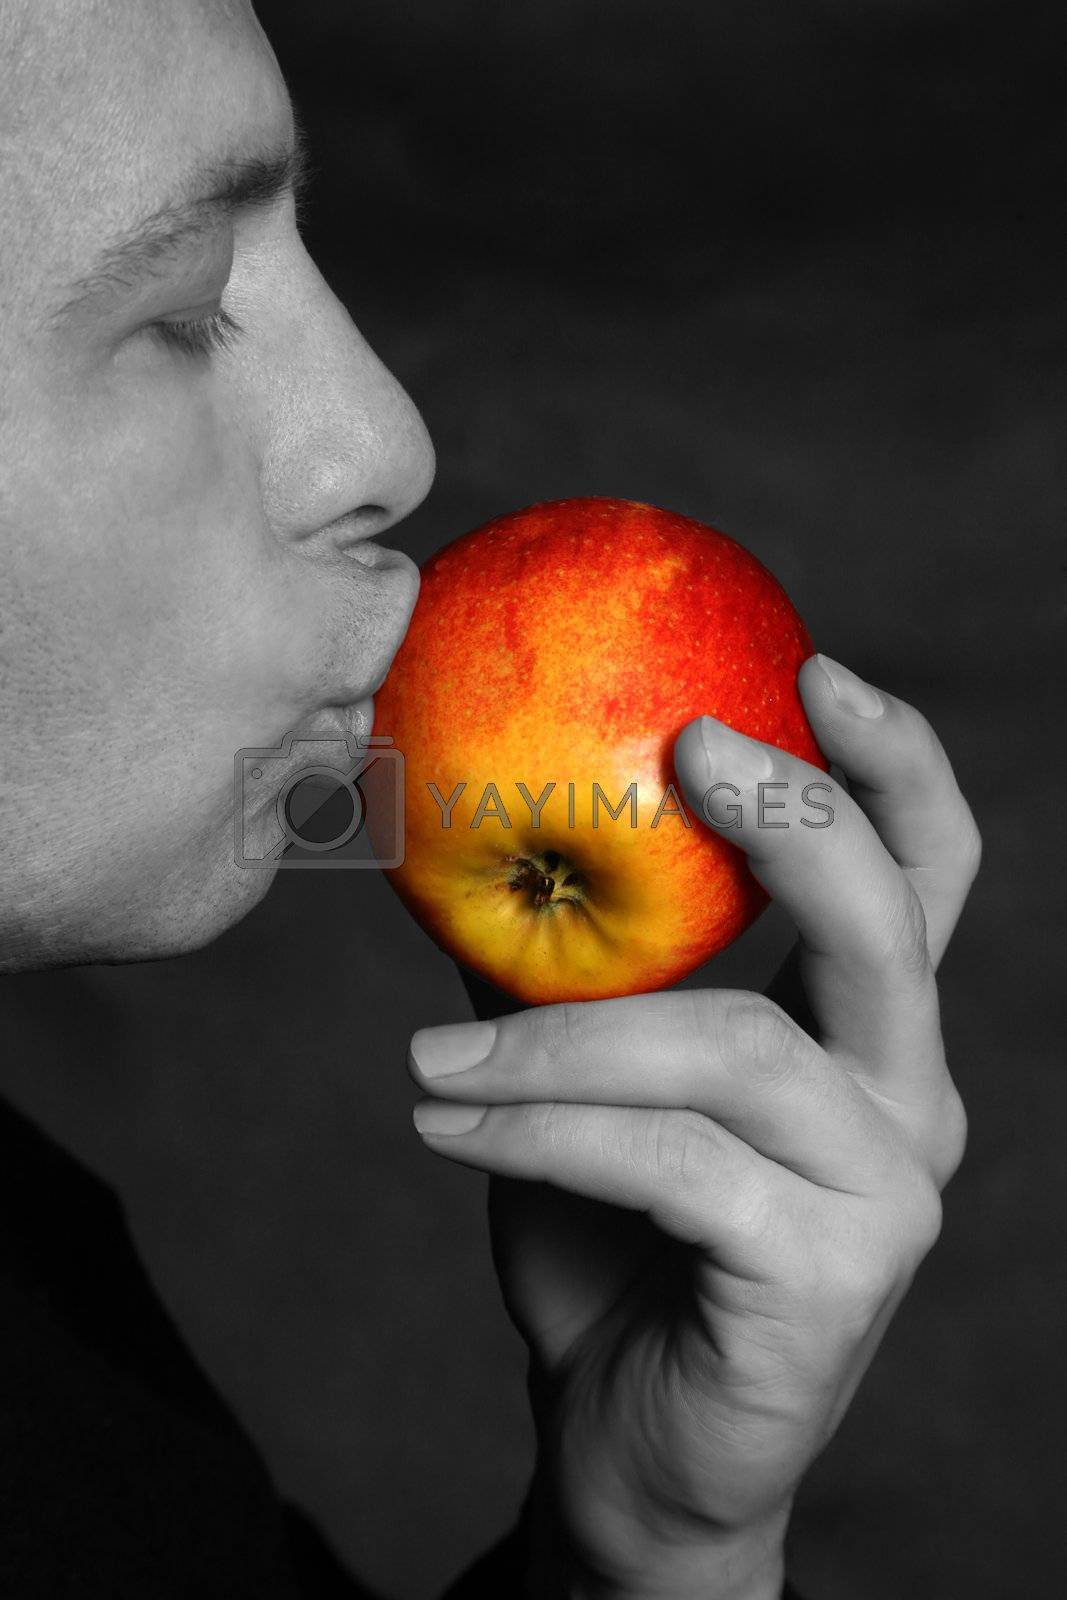 The man concerns lips of a red apple